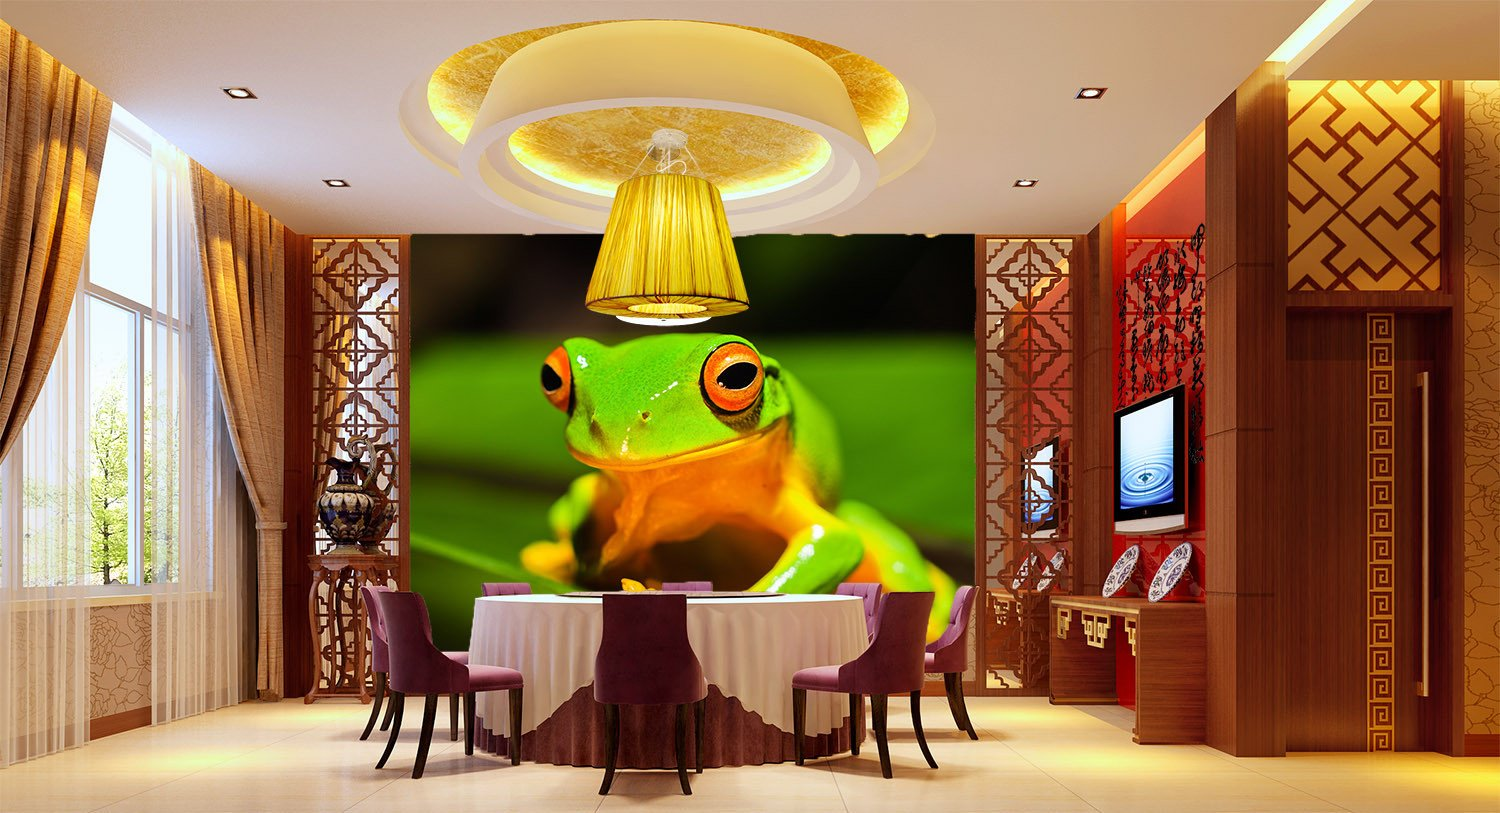 Green Frog 1 Wallpaper AJ Wallpaper